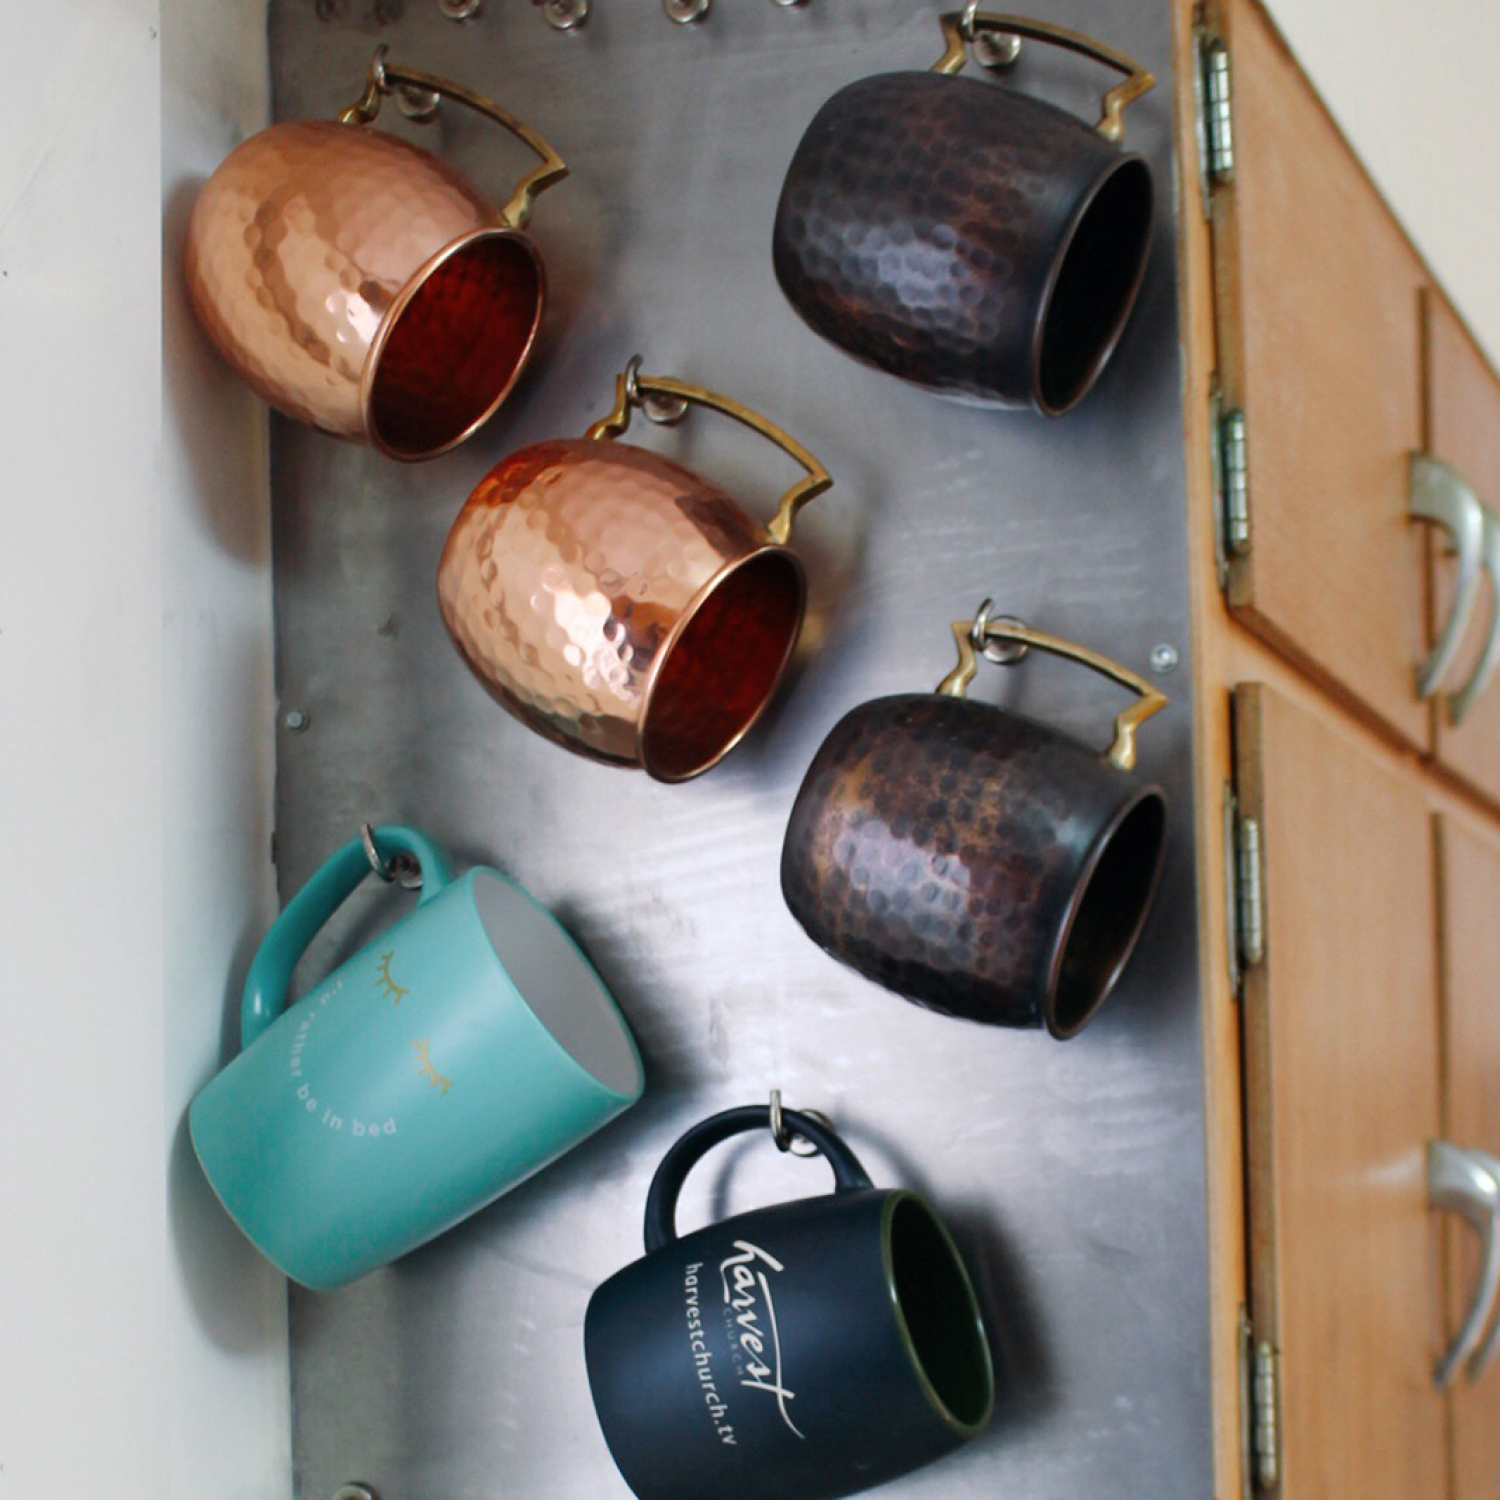 Assorted copper and ceramic mugs hanging on side of cabinet